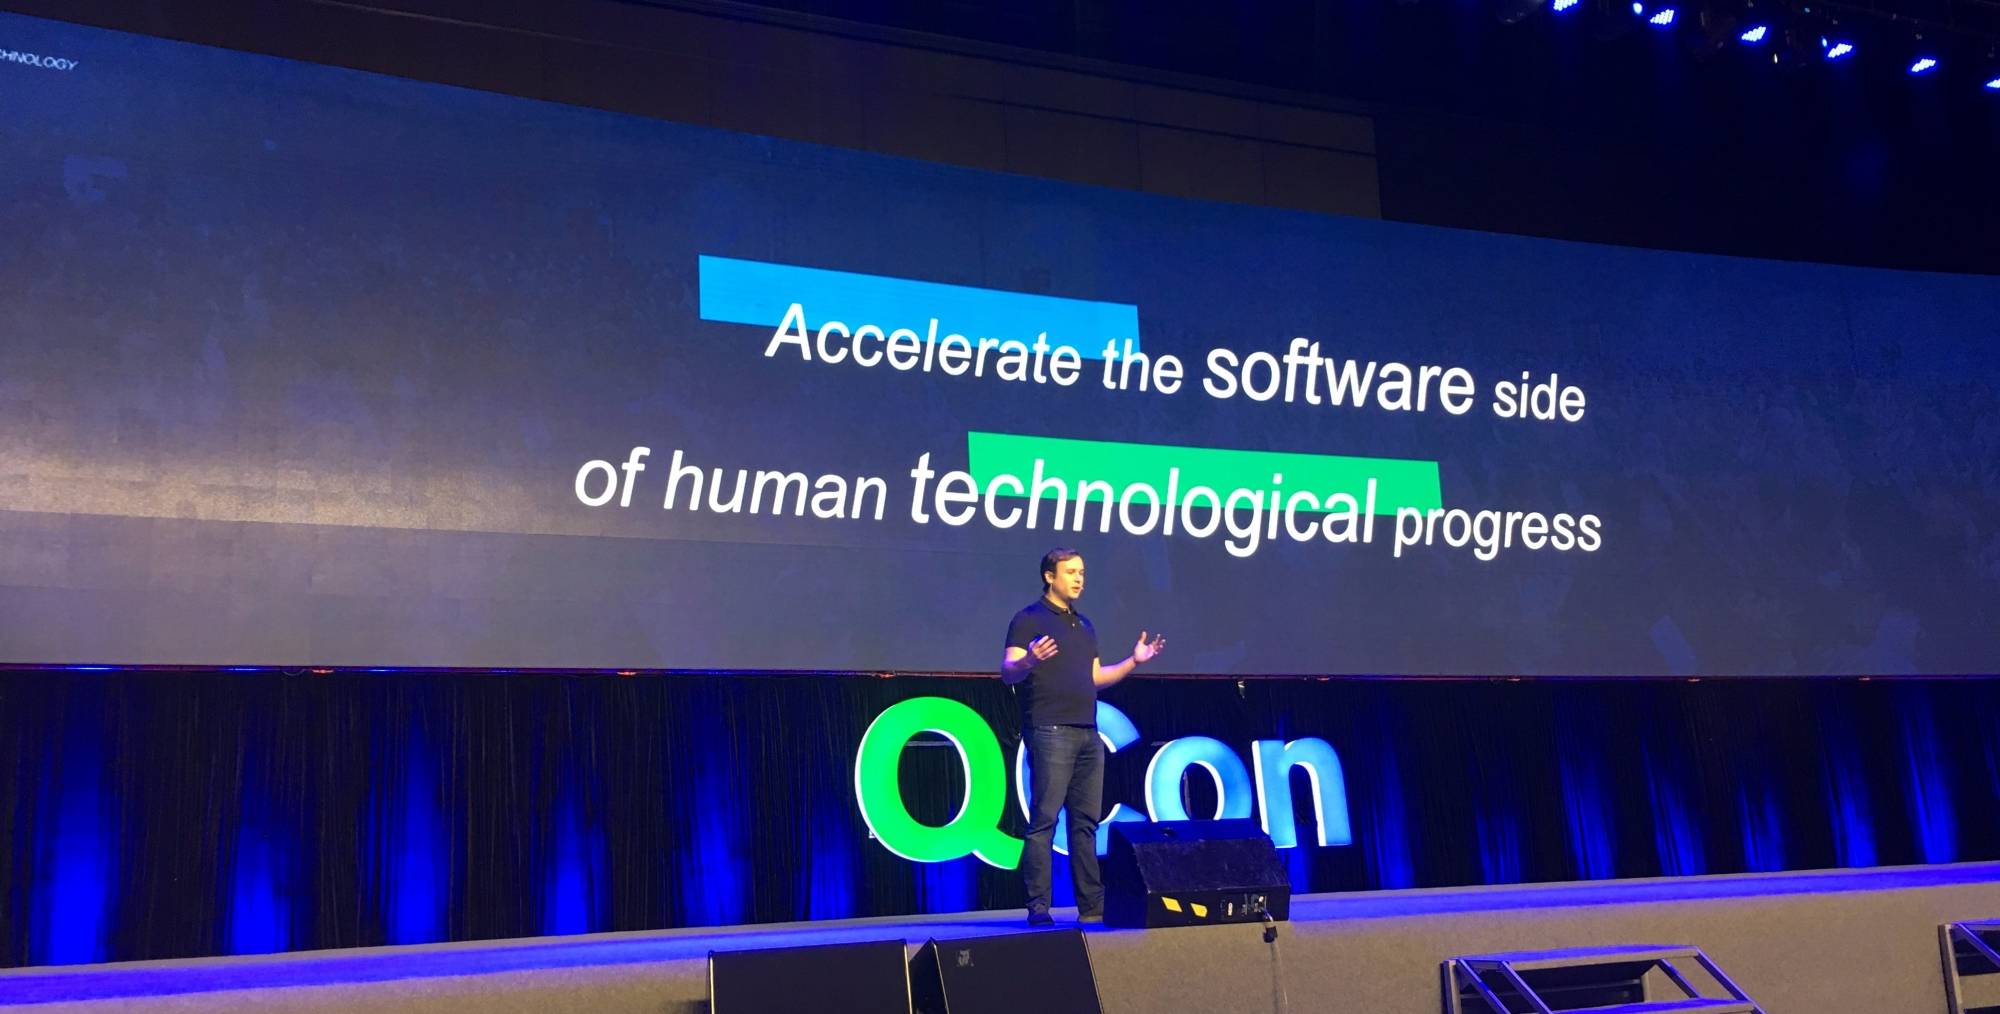 Floyd Marinescu presenting the mission of InfoQ & QCon.